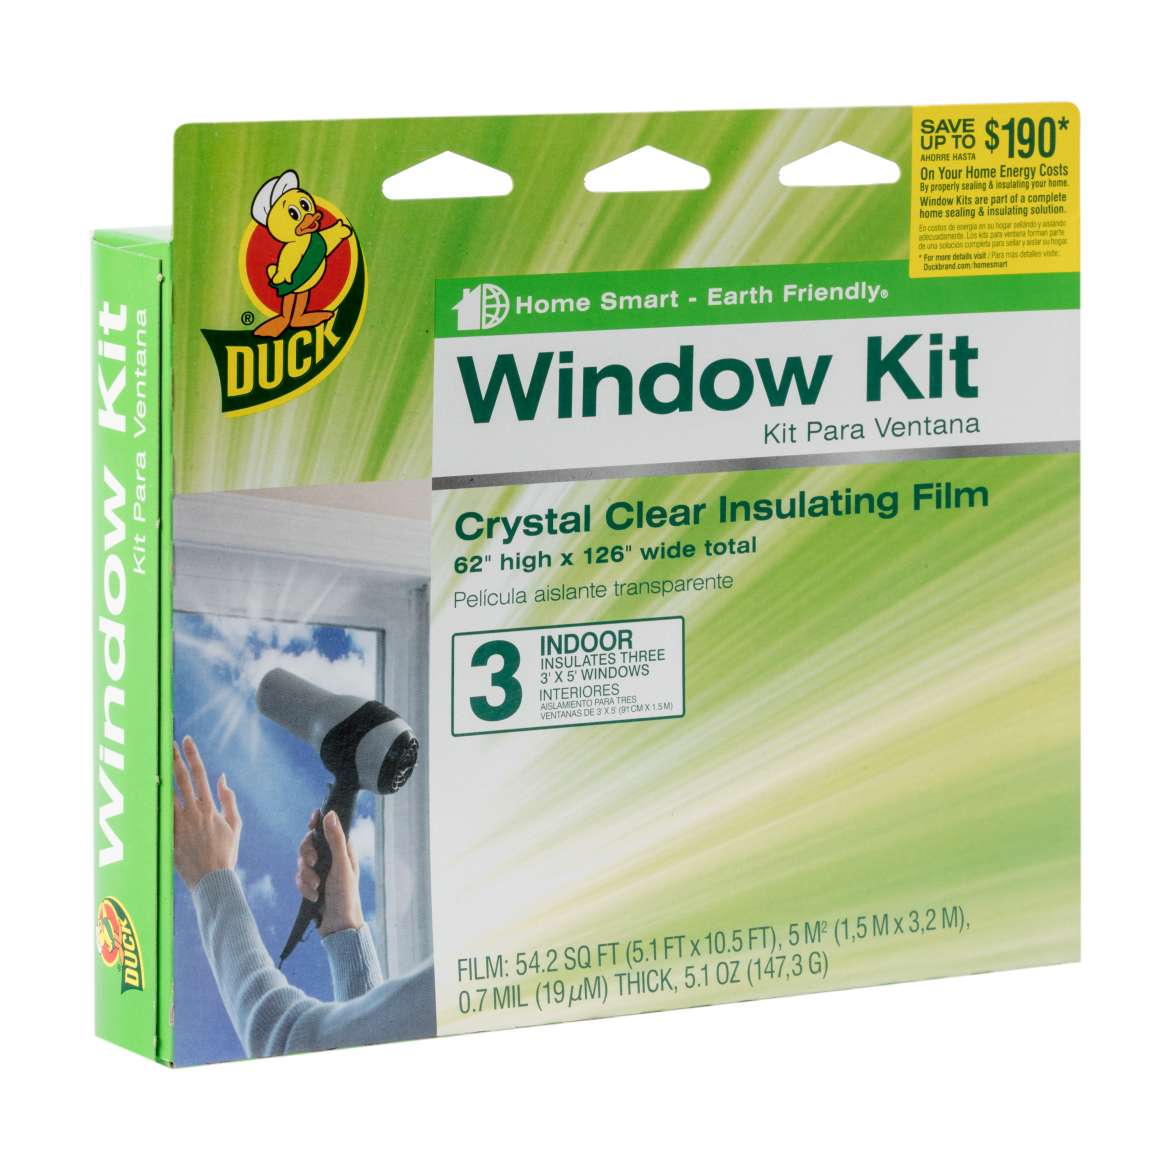 Shrink film window insulation kit 62in x 126in 3pk duck for Window insulation kit